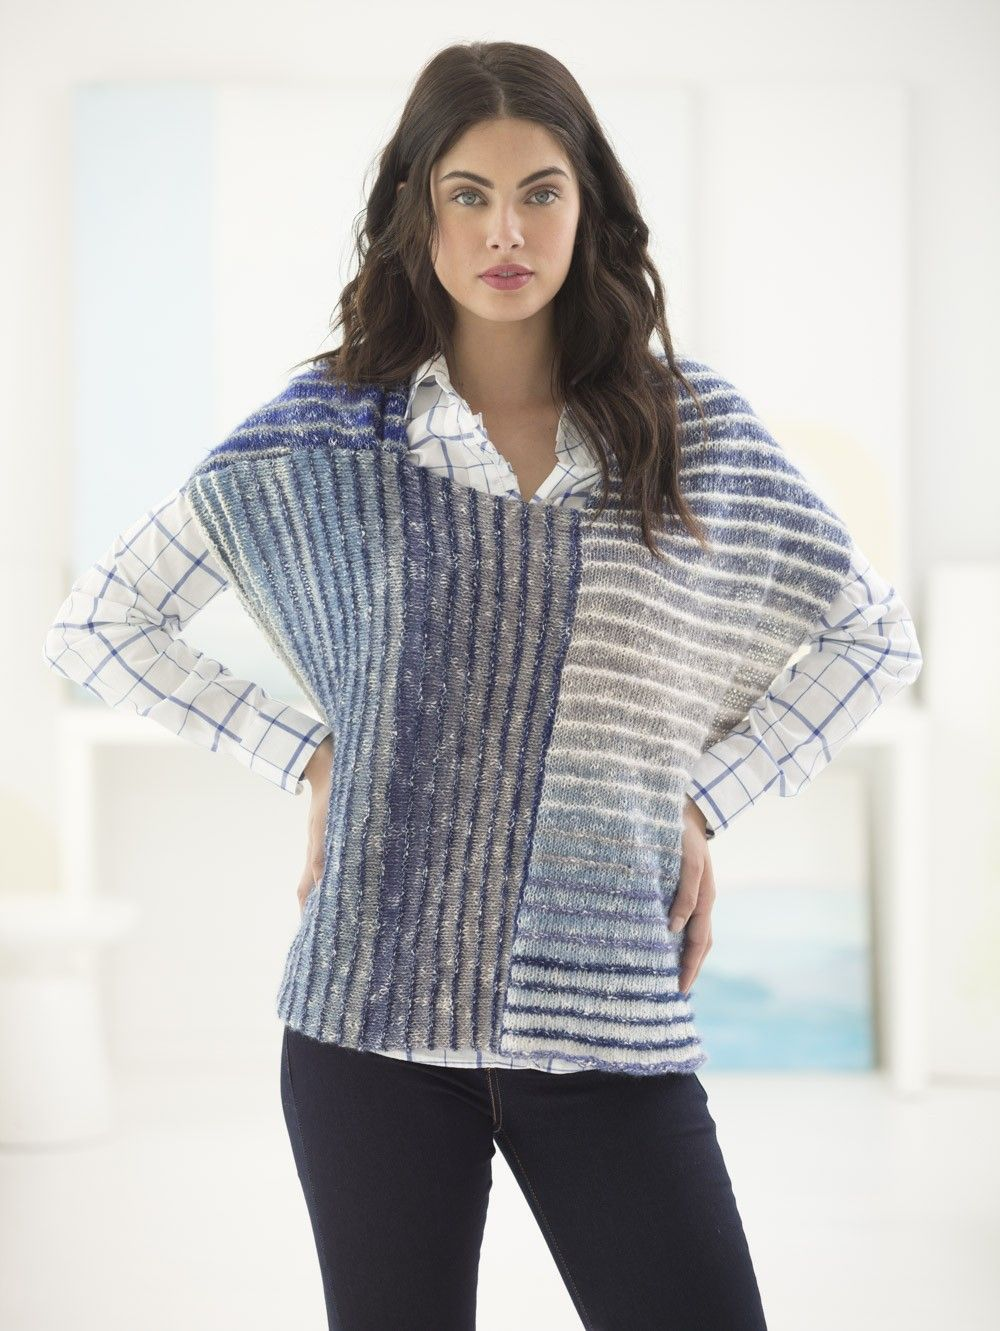 More! Ponchos to Knit for Fall – 15 free patterns from Lion Brand ...